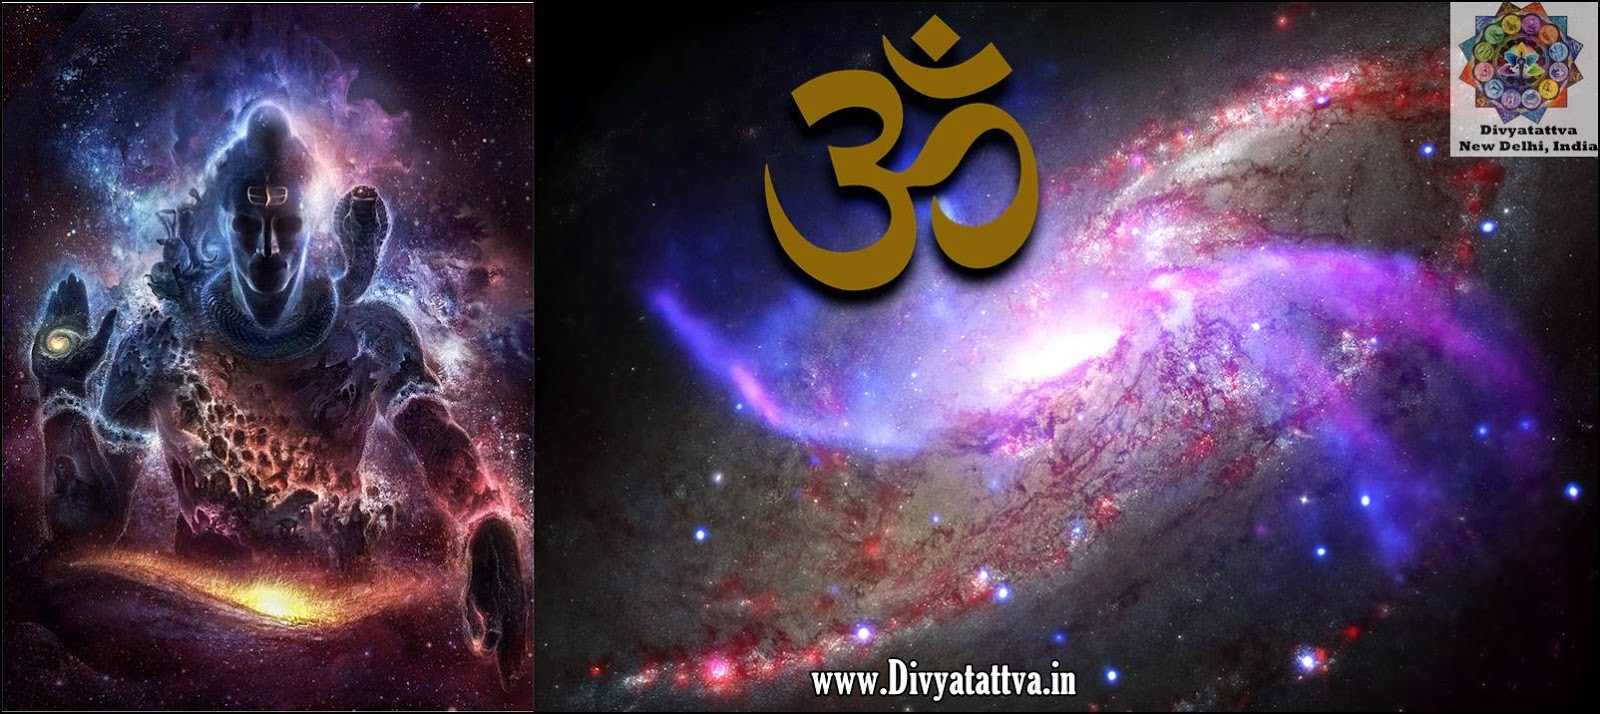 Divyatattva Astrology Free Horoscopes Psychic Tarot Yoga Tantra Occult Images Videos Lord Shiva Ahgori Wallpapers Goddess Parvati Background God Shiv Images In Hd Shambhu 3d Photos Free Aum Rudra Pics Bholenath